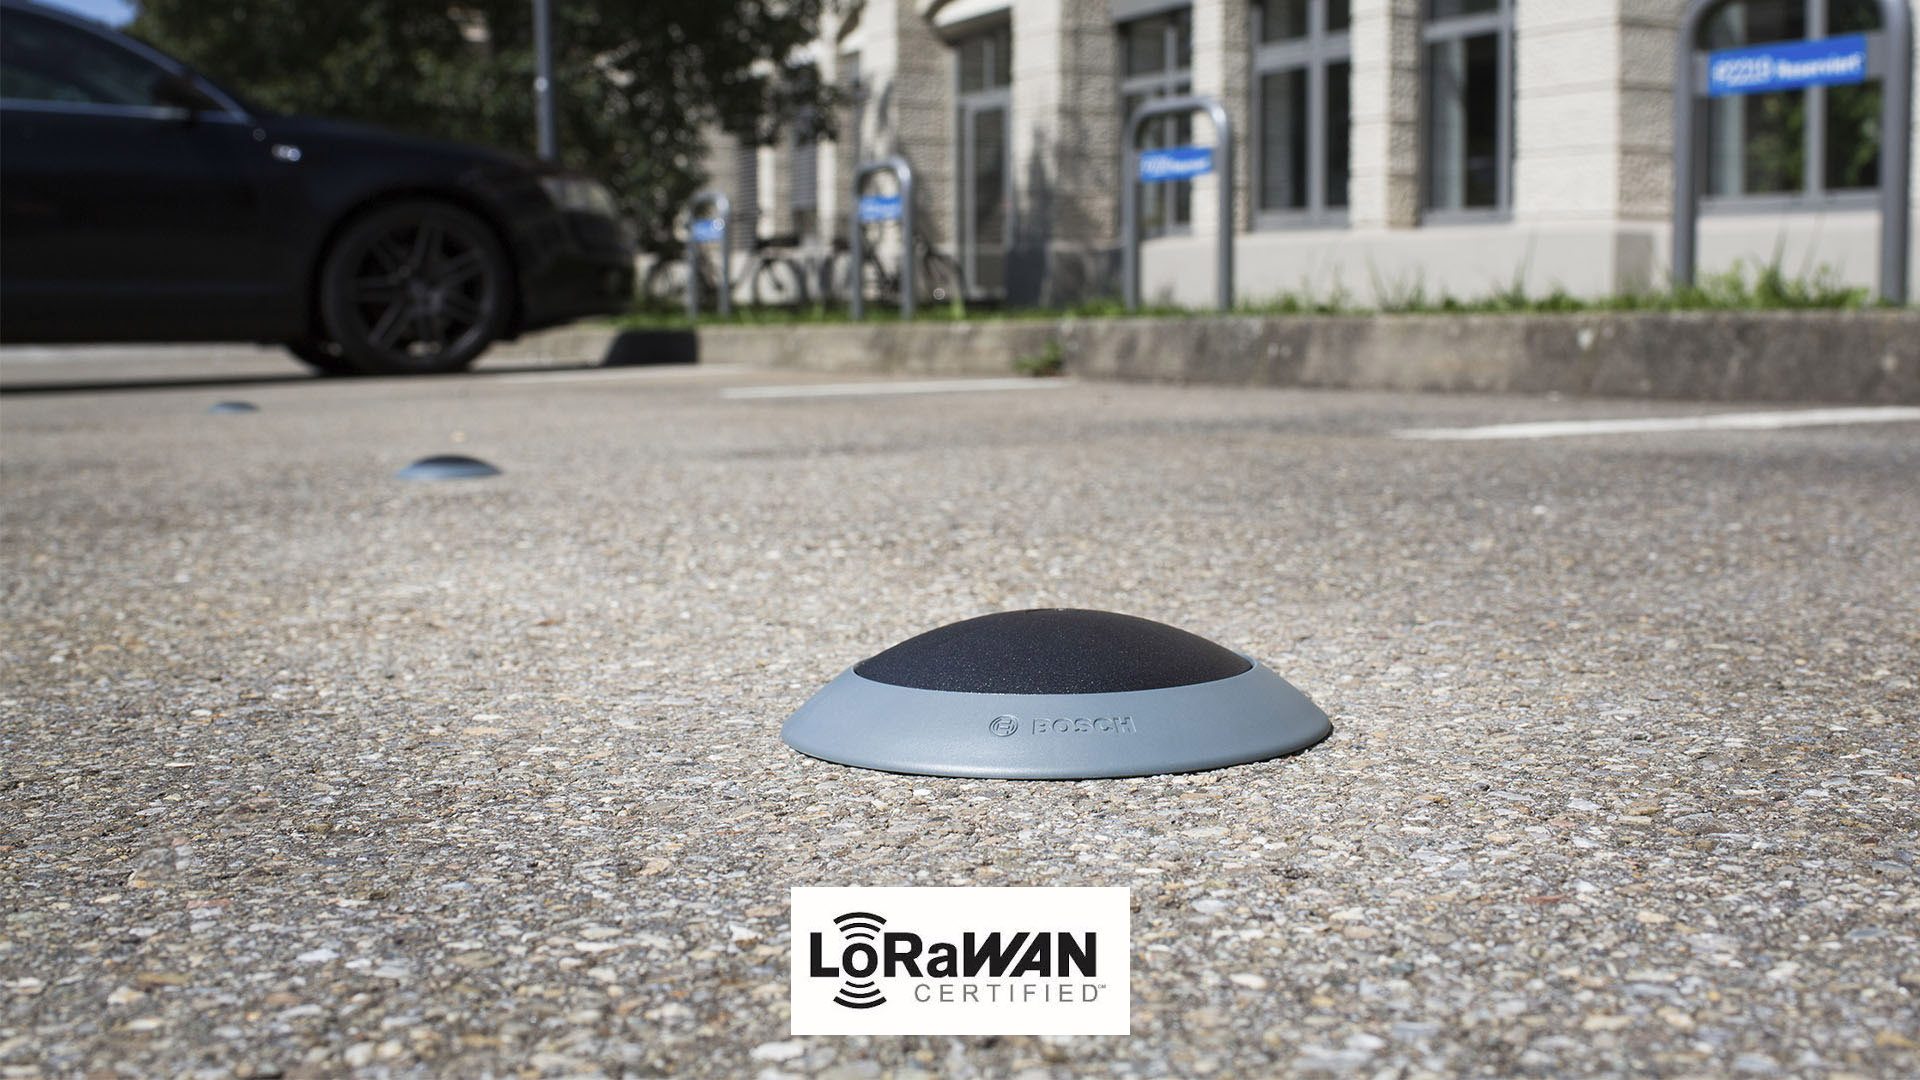 LoRaWAN certified Parking Lot Sensor from Bosch